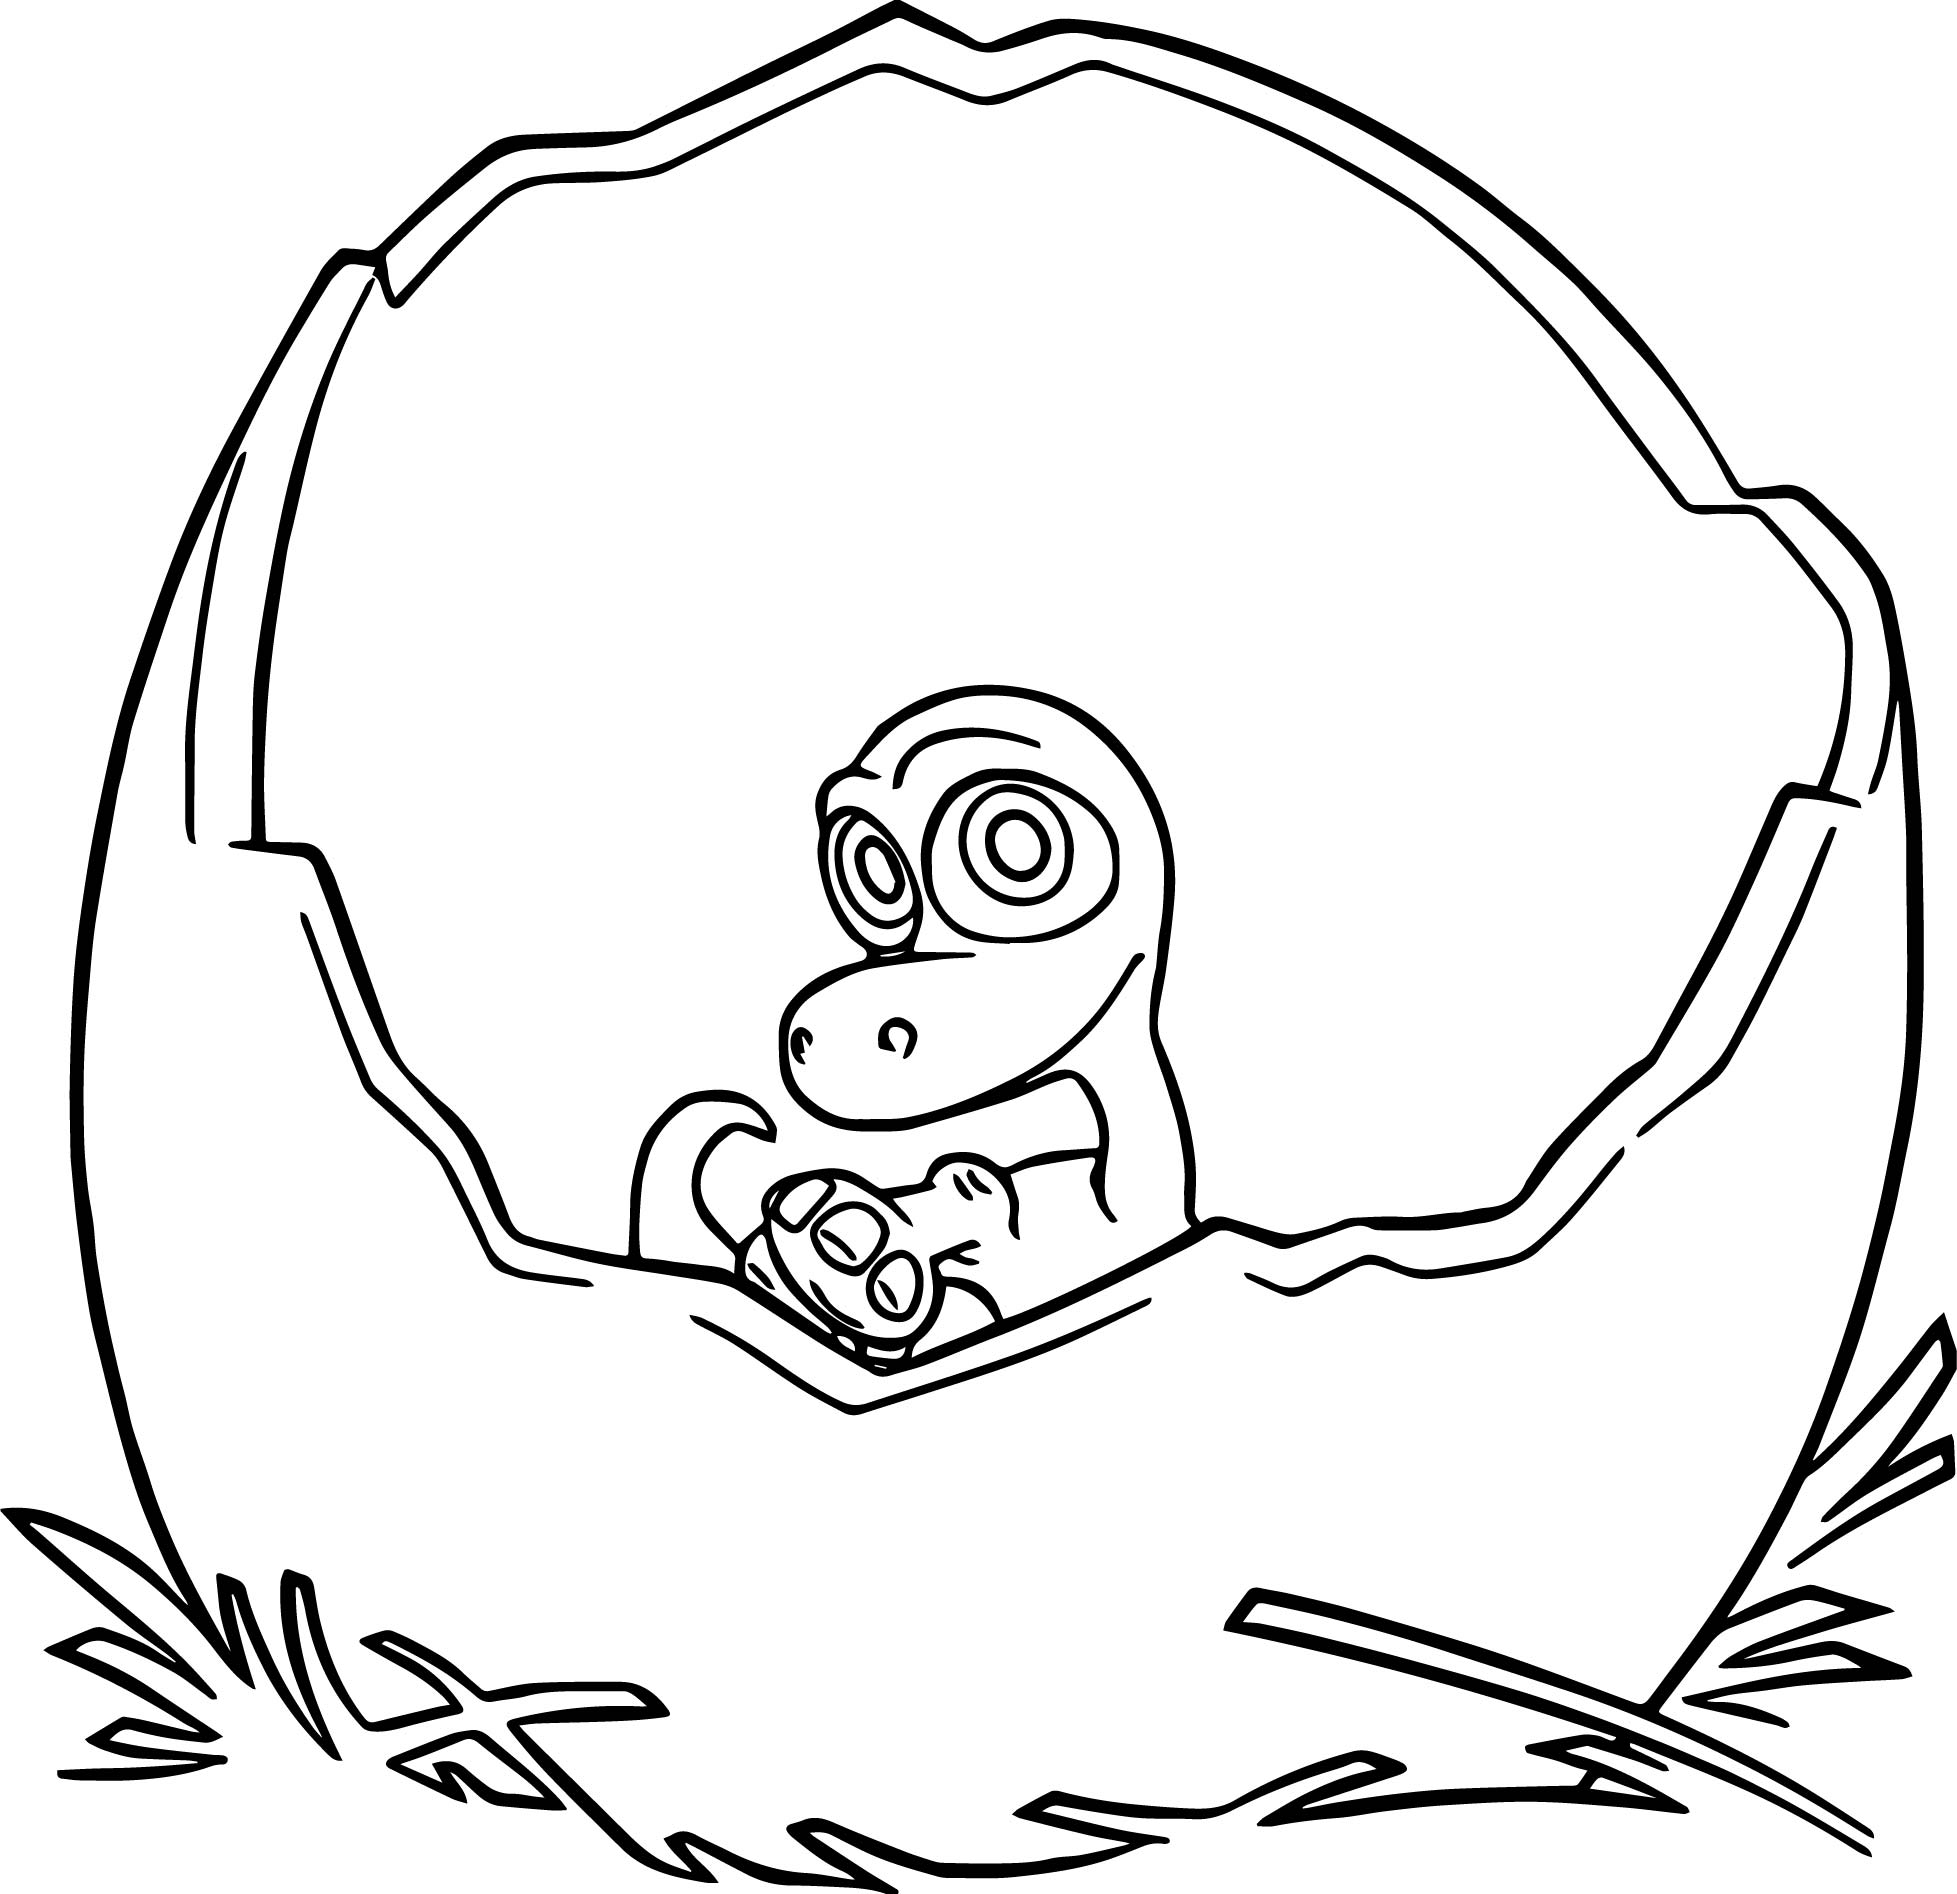 The Good Dinosaur Disney Baby Arlo Cartoon Coloring Pages